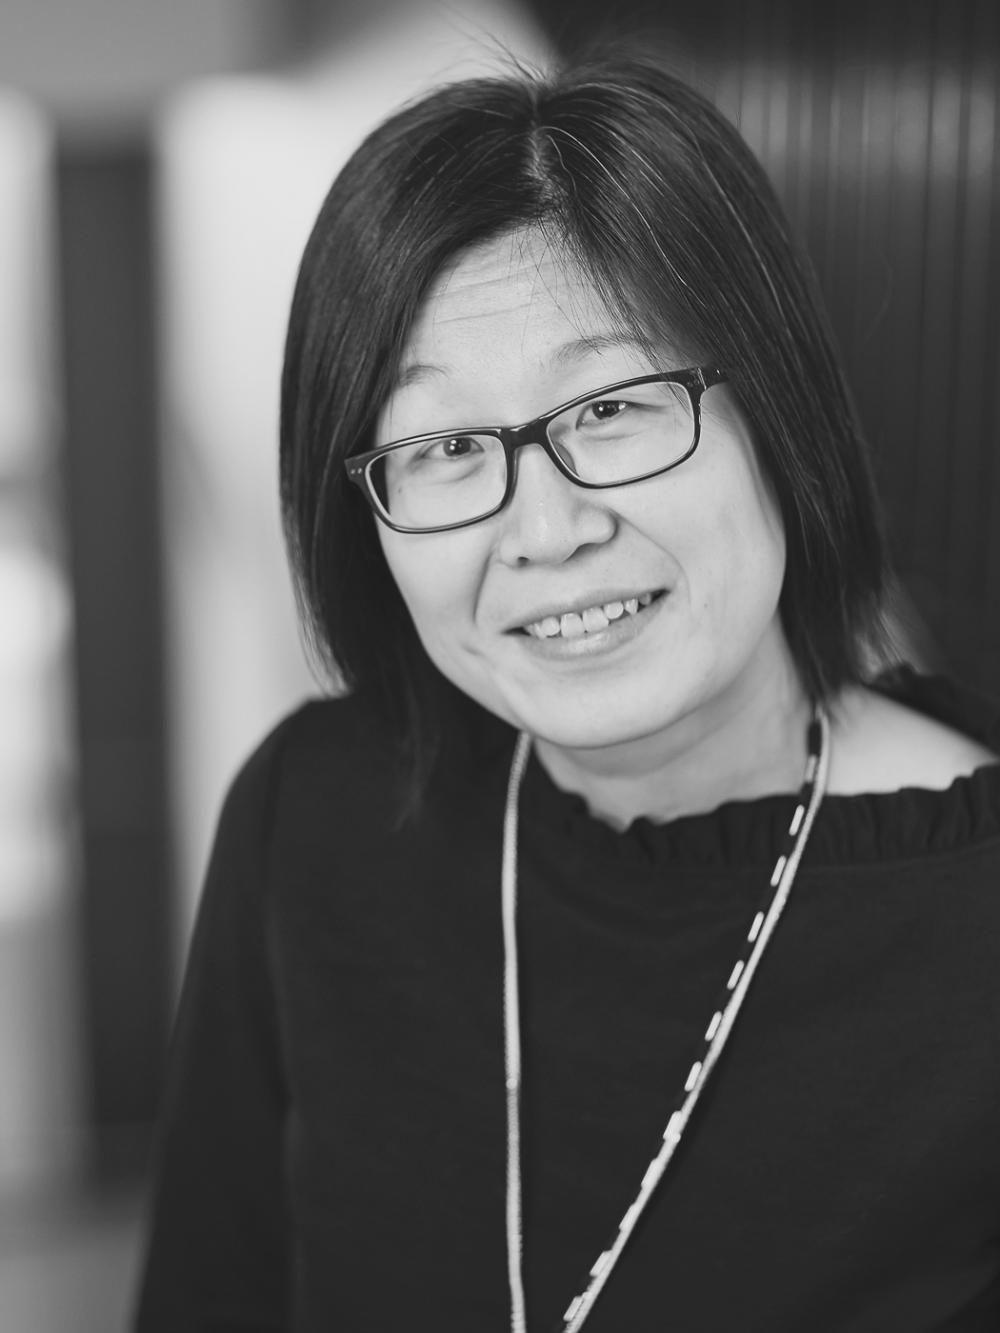 Tao Yue (Photo: Bård Gudim)